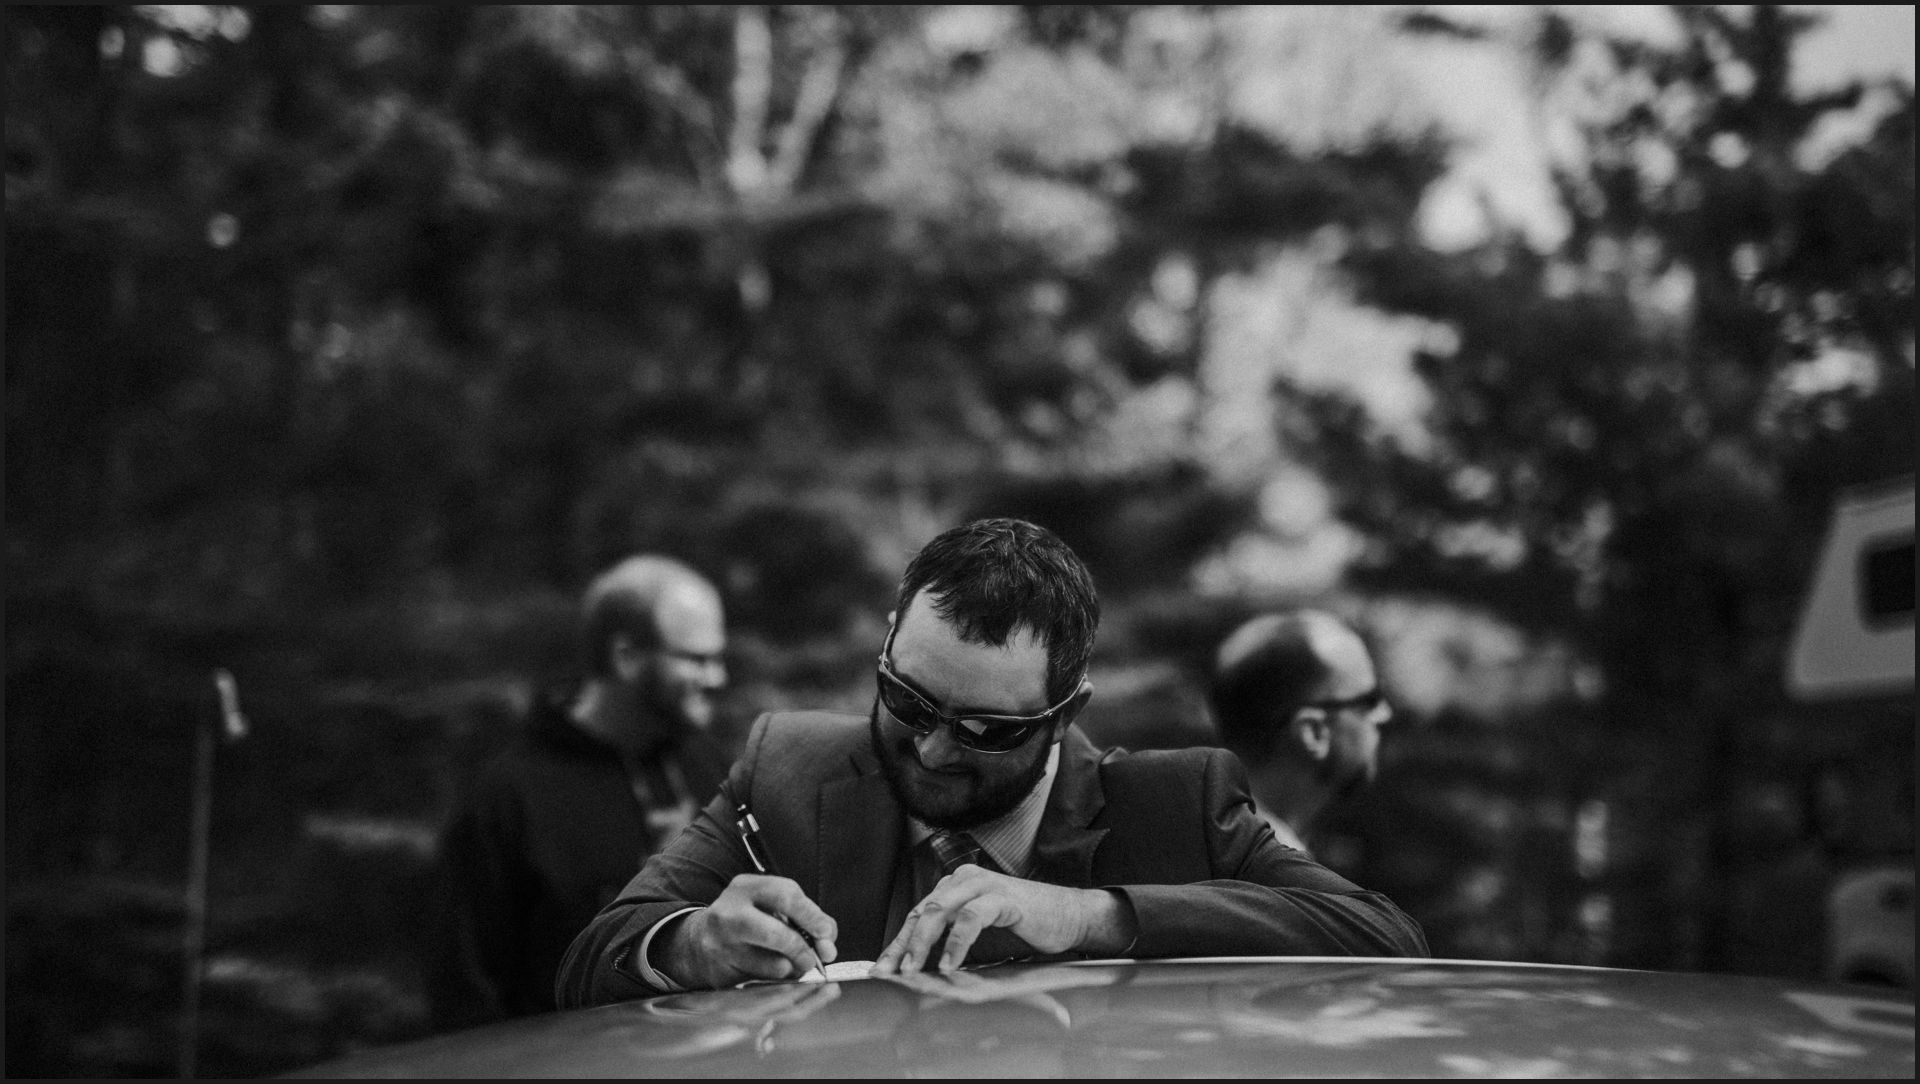 groom, black and white, groom writing, wedding vows